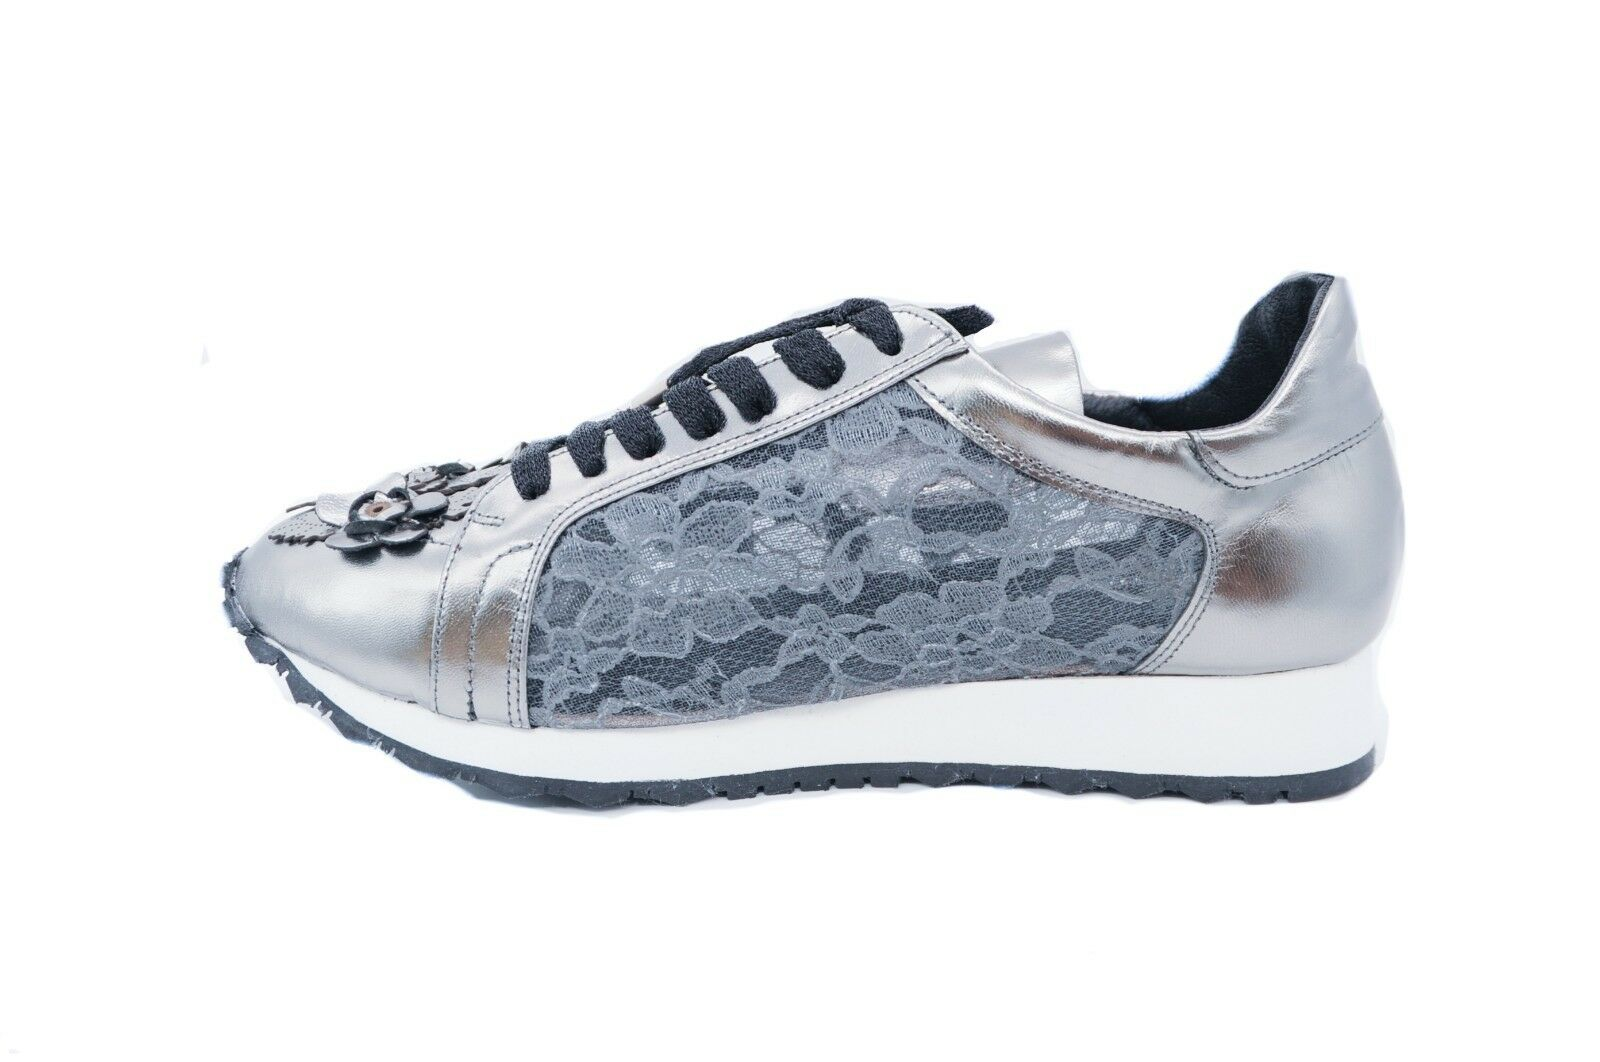 Goody2shoes Ladies' Leather Trainers with 3D Silver Floral Floral Floral and Lace UK Designed bb7ec7